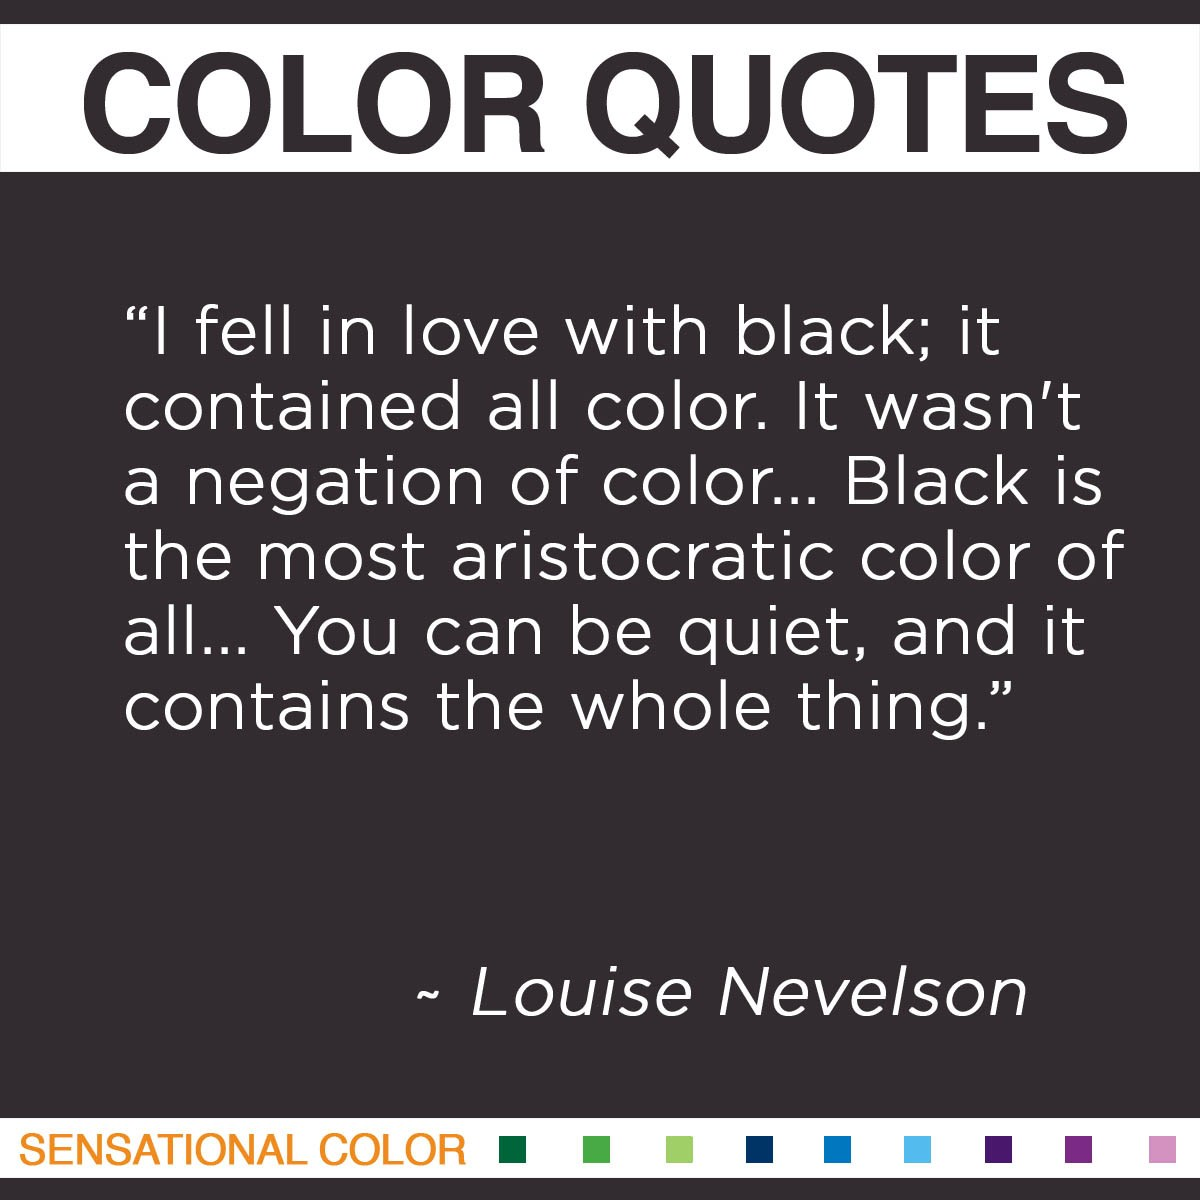 """""I fell in love with black; it contained all color. It wasn't a negation of color… Black is the most aristocratic color of all… You can be quiet, and it contains the whole thing."" - Louise Nevelson"""